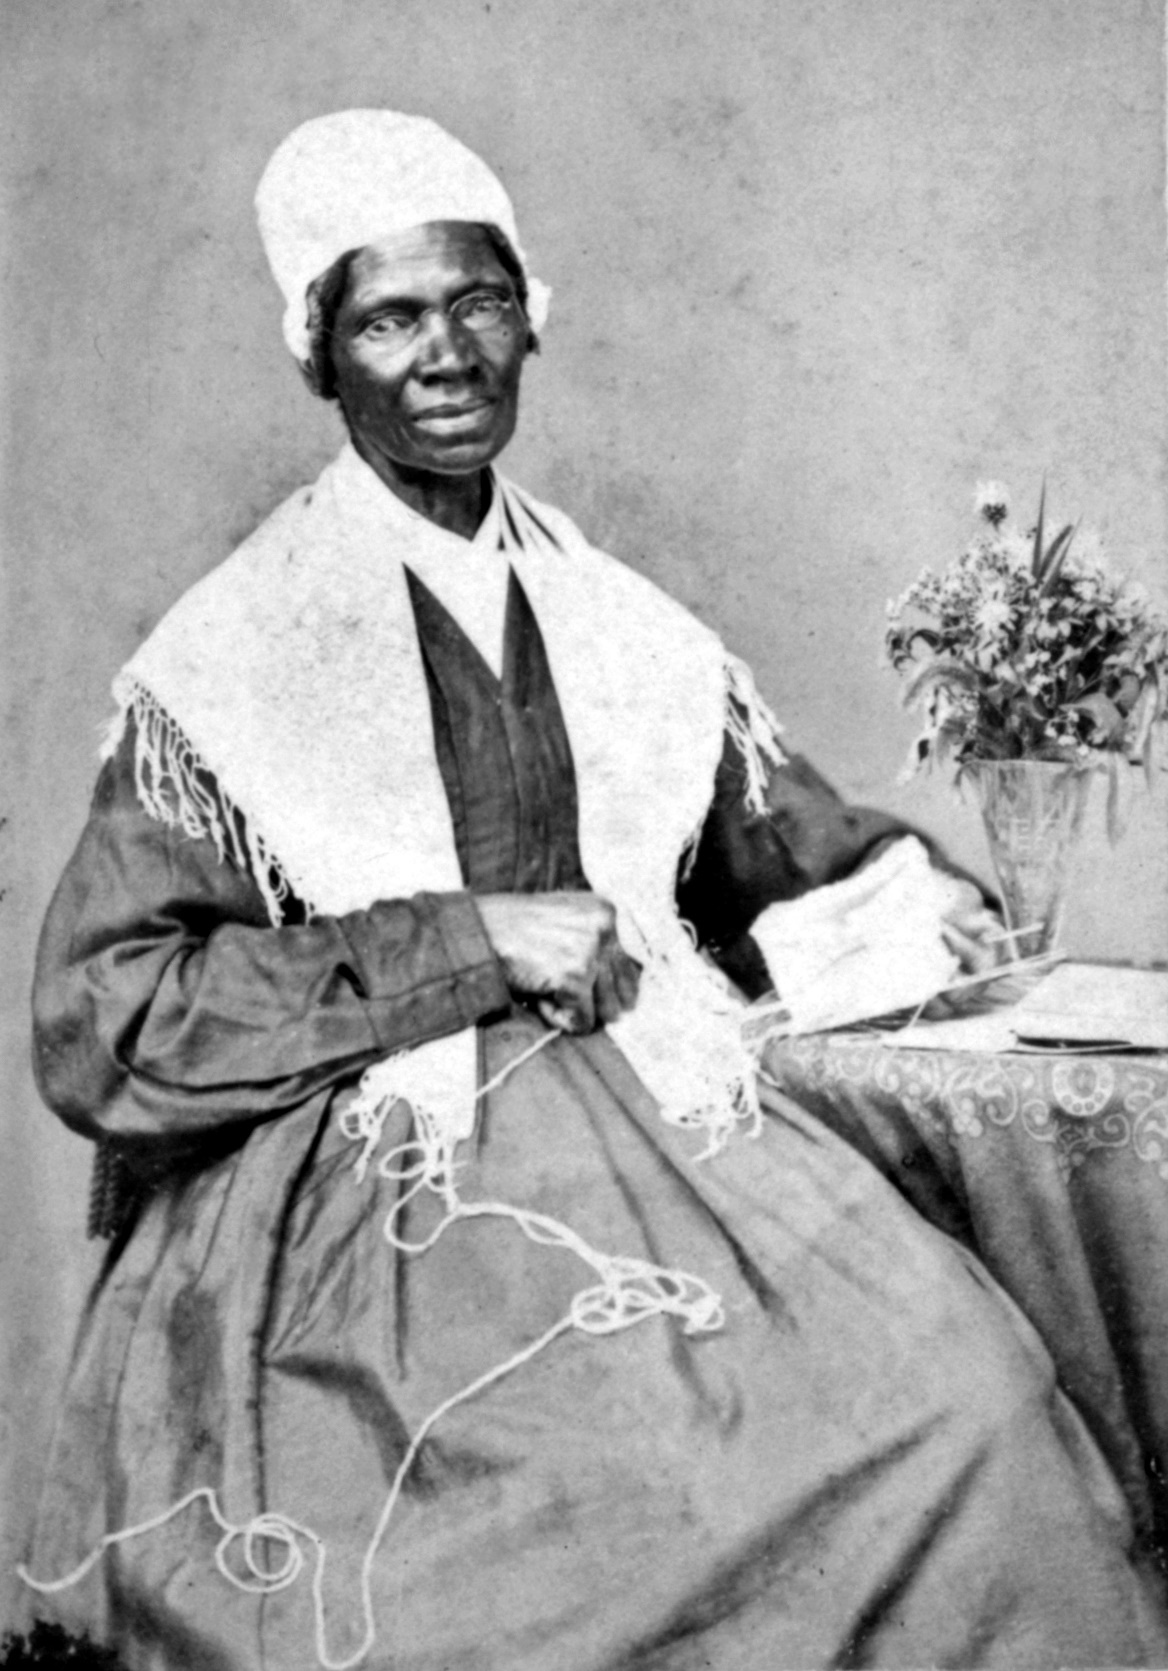 Sojourner Truth - Women's History Month 2018 - Women Empowerment - Empowering women in history - feminists - women's rights activists